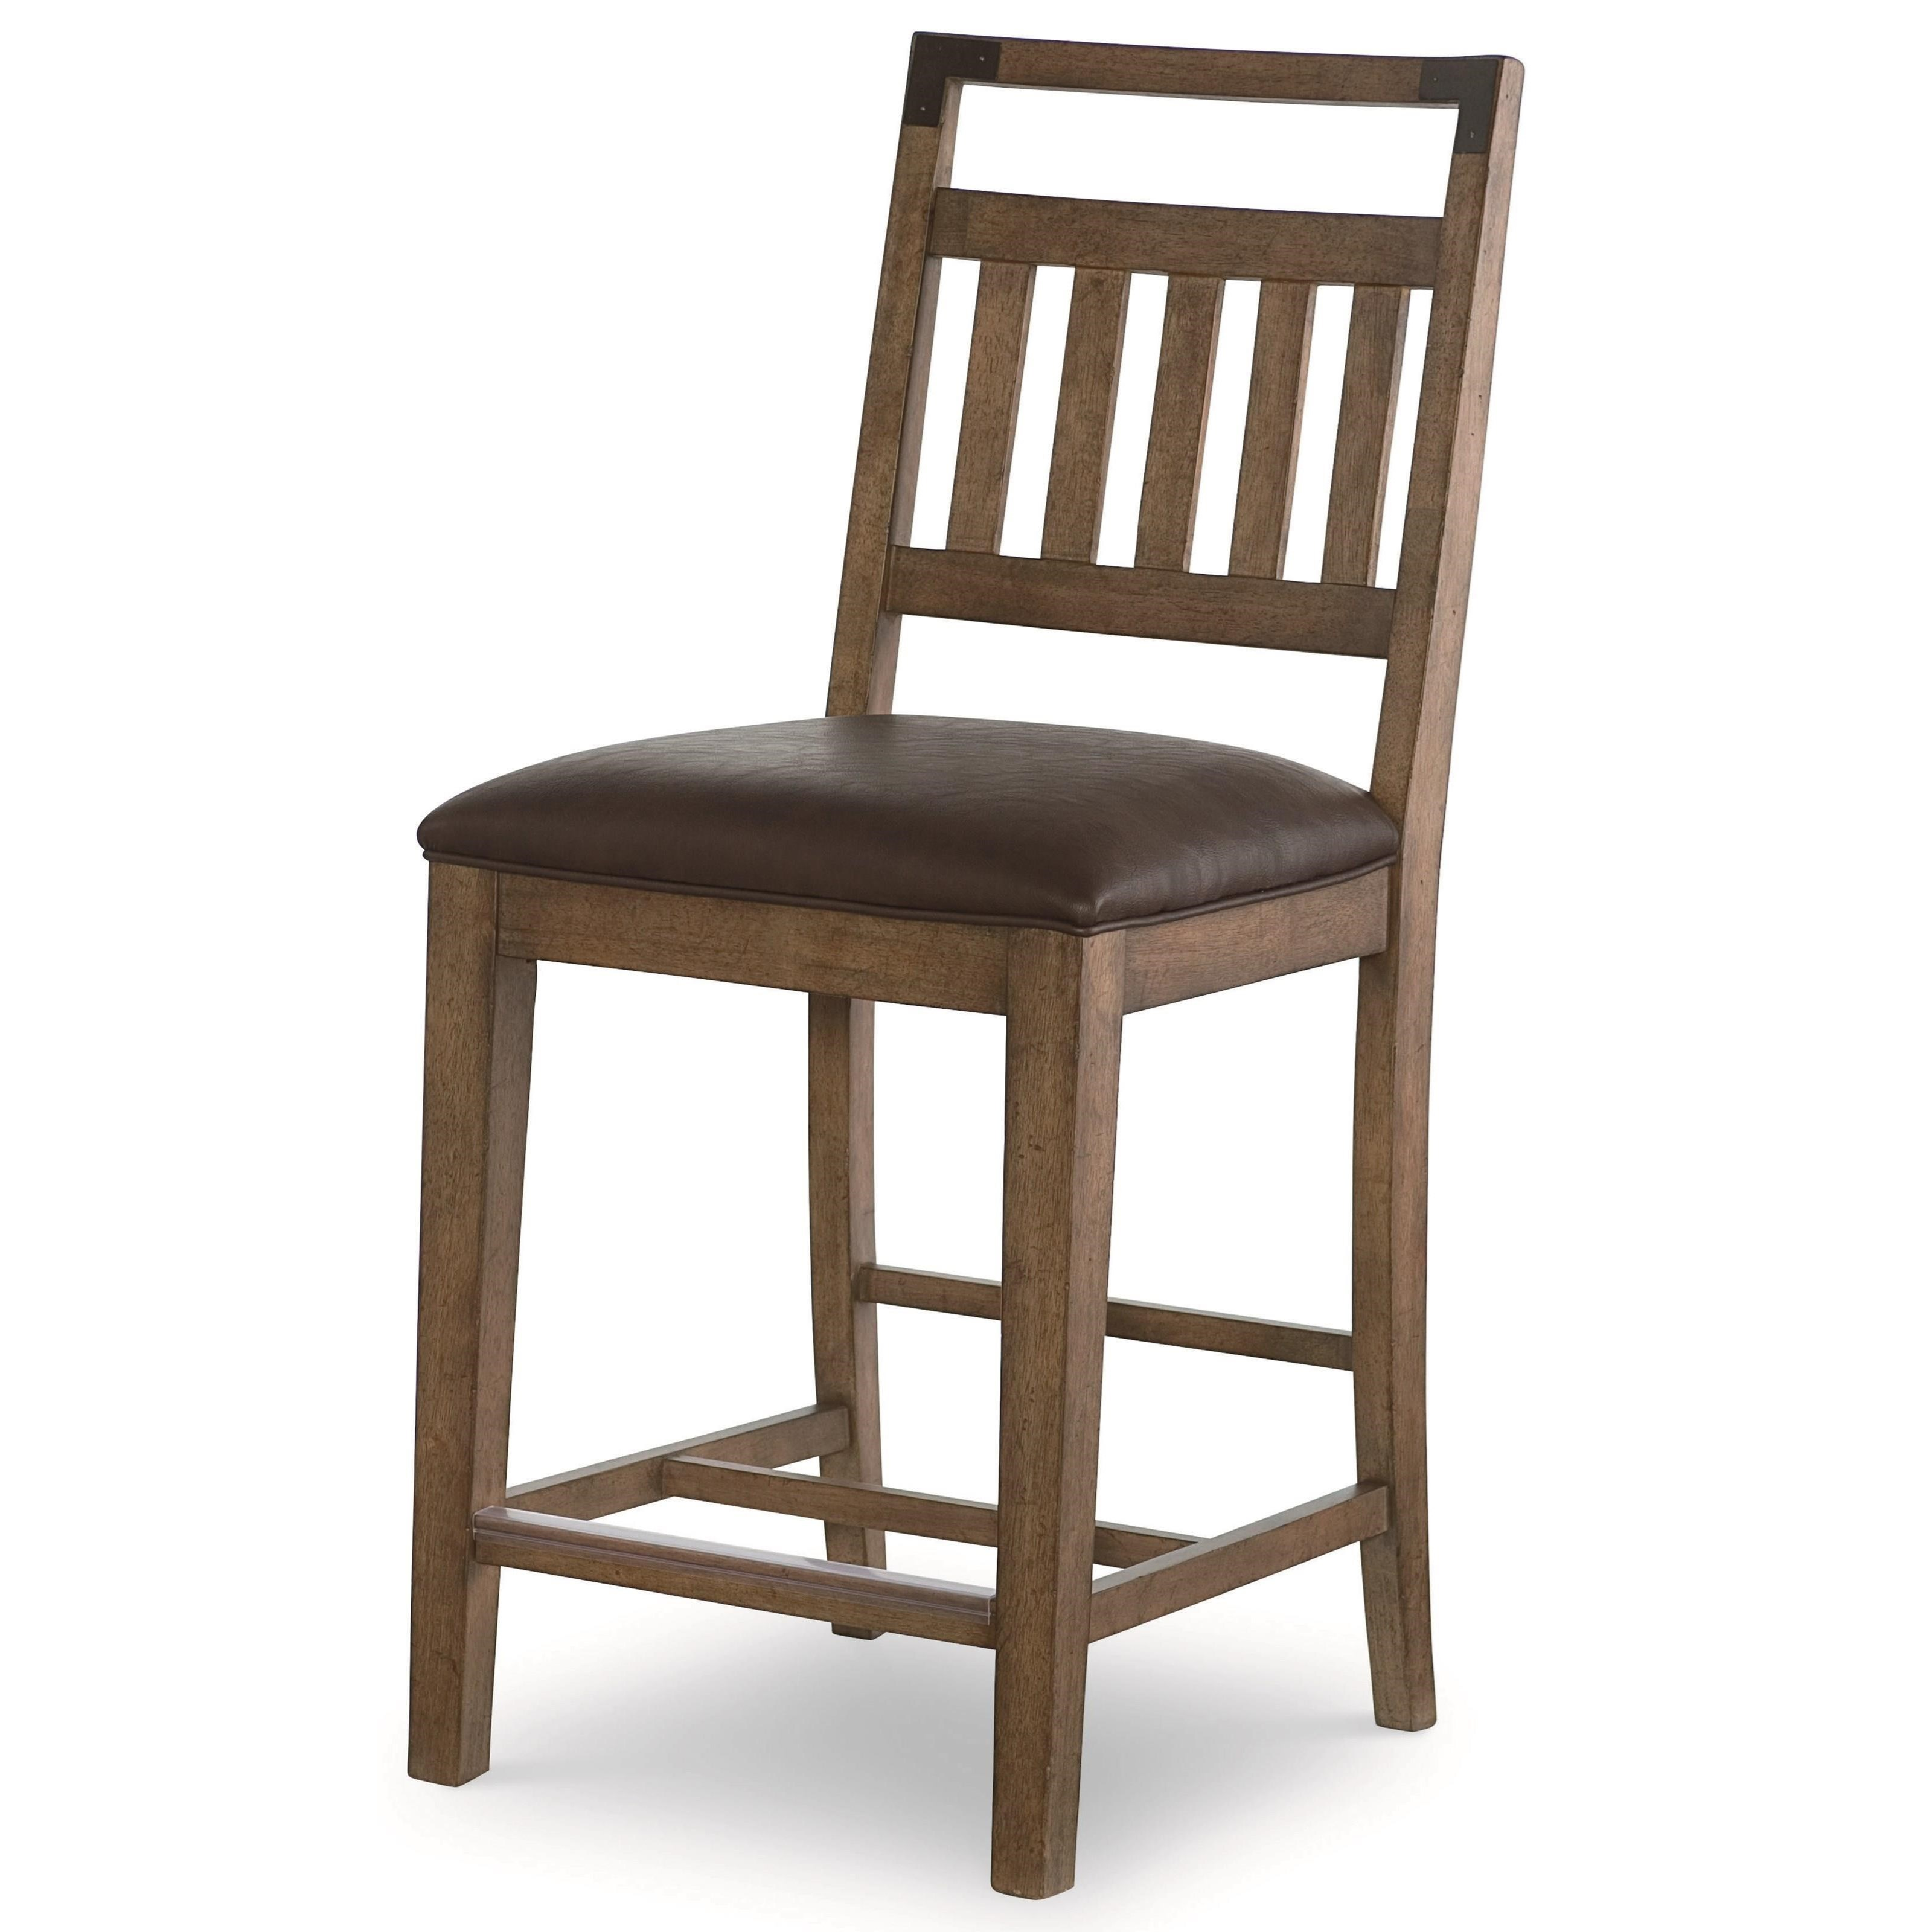 Legacy Classic Metalworks Pub Chair  - Item Number: 5610-945 KD